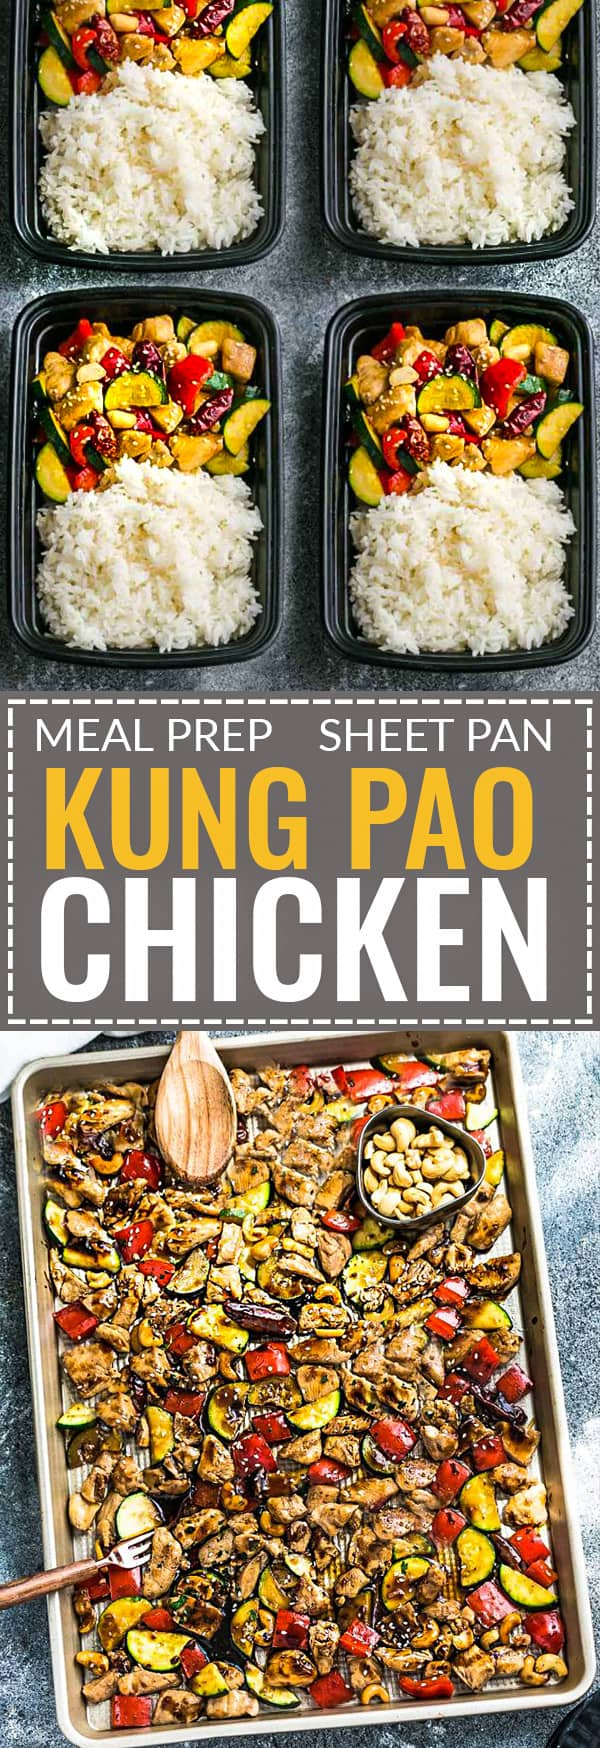 Sheet Pan Kung Pao Chicken has all the flavors of the popular Chinese restaurant takeout dish made on a sheet pan. Best of all, super easy to make with paleo friendly options. Plus a serving of tender crisp broccoli and red & green bell peppers for a healthier meal. Perfect for busy weeknights! Plus a step-by-step how to video! Weekly Sunday meal prep for the week and leftovers are great for lunch bowls & lunchboxes for work or school.